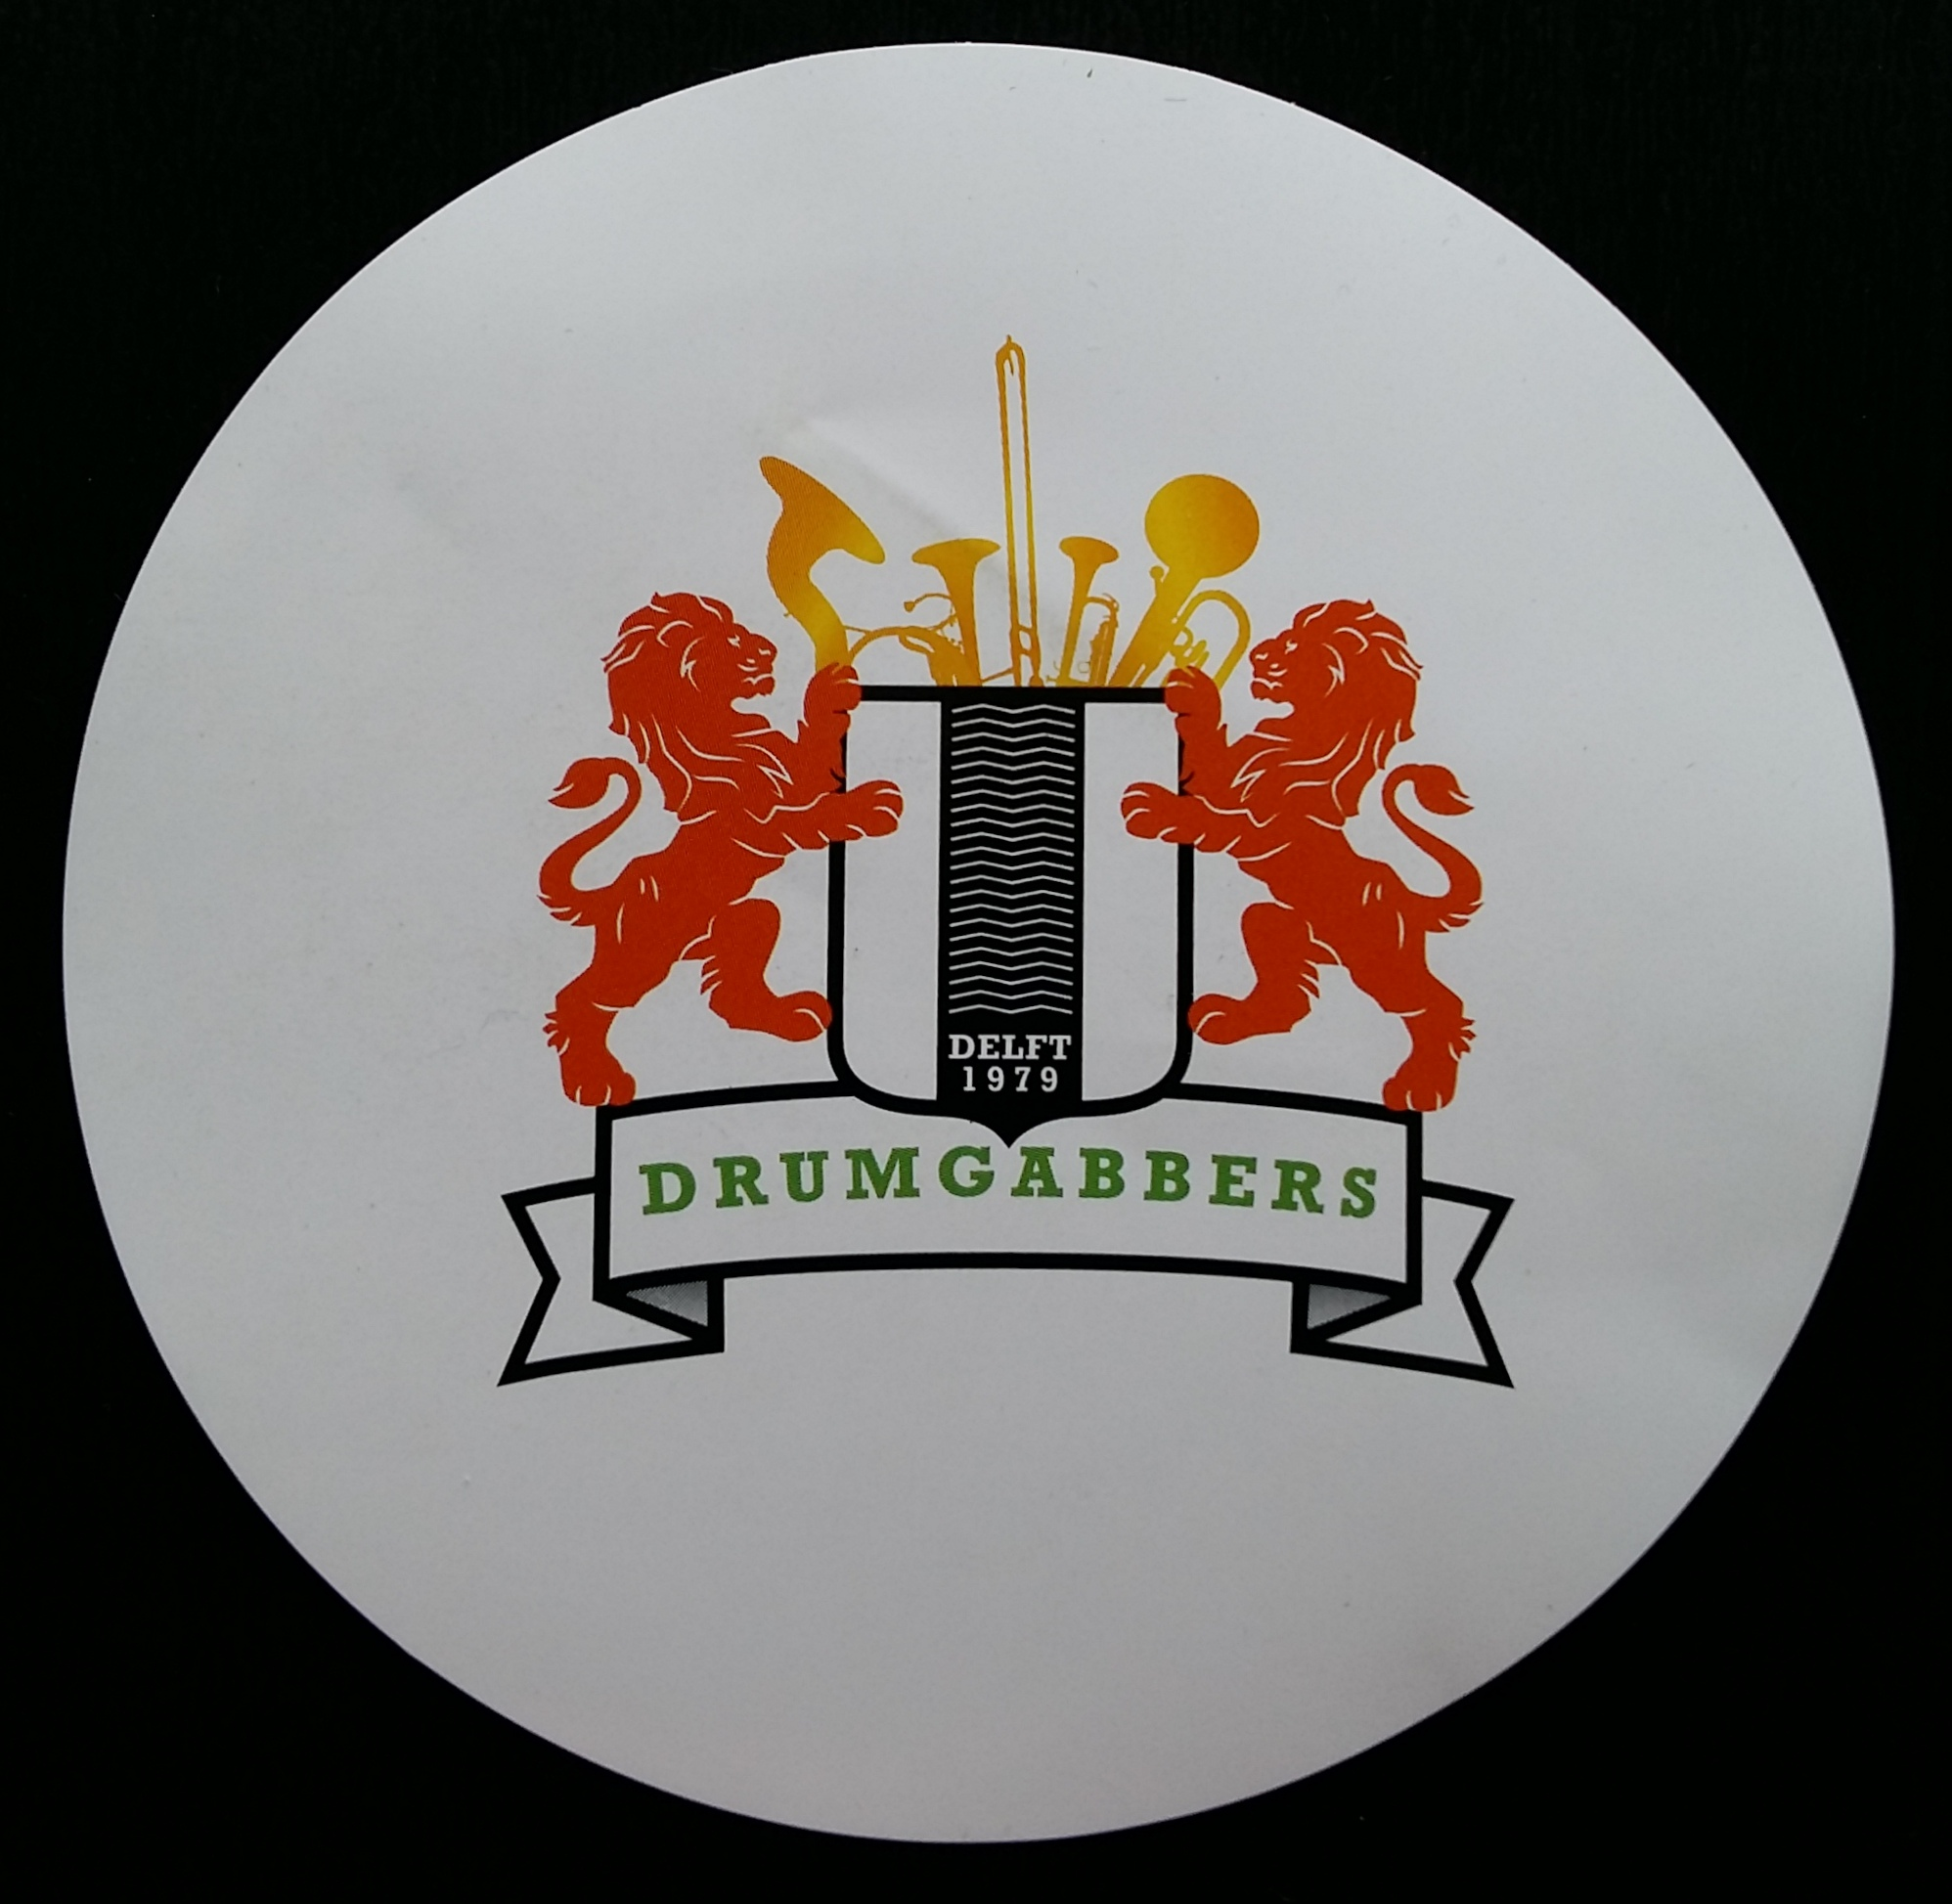 2017 Drumgabbers sticker